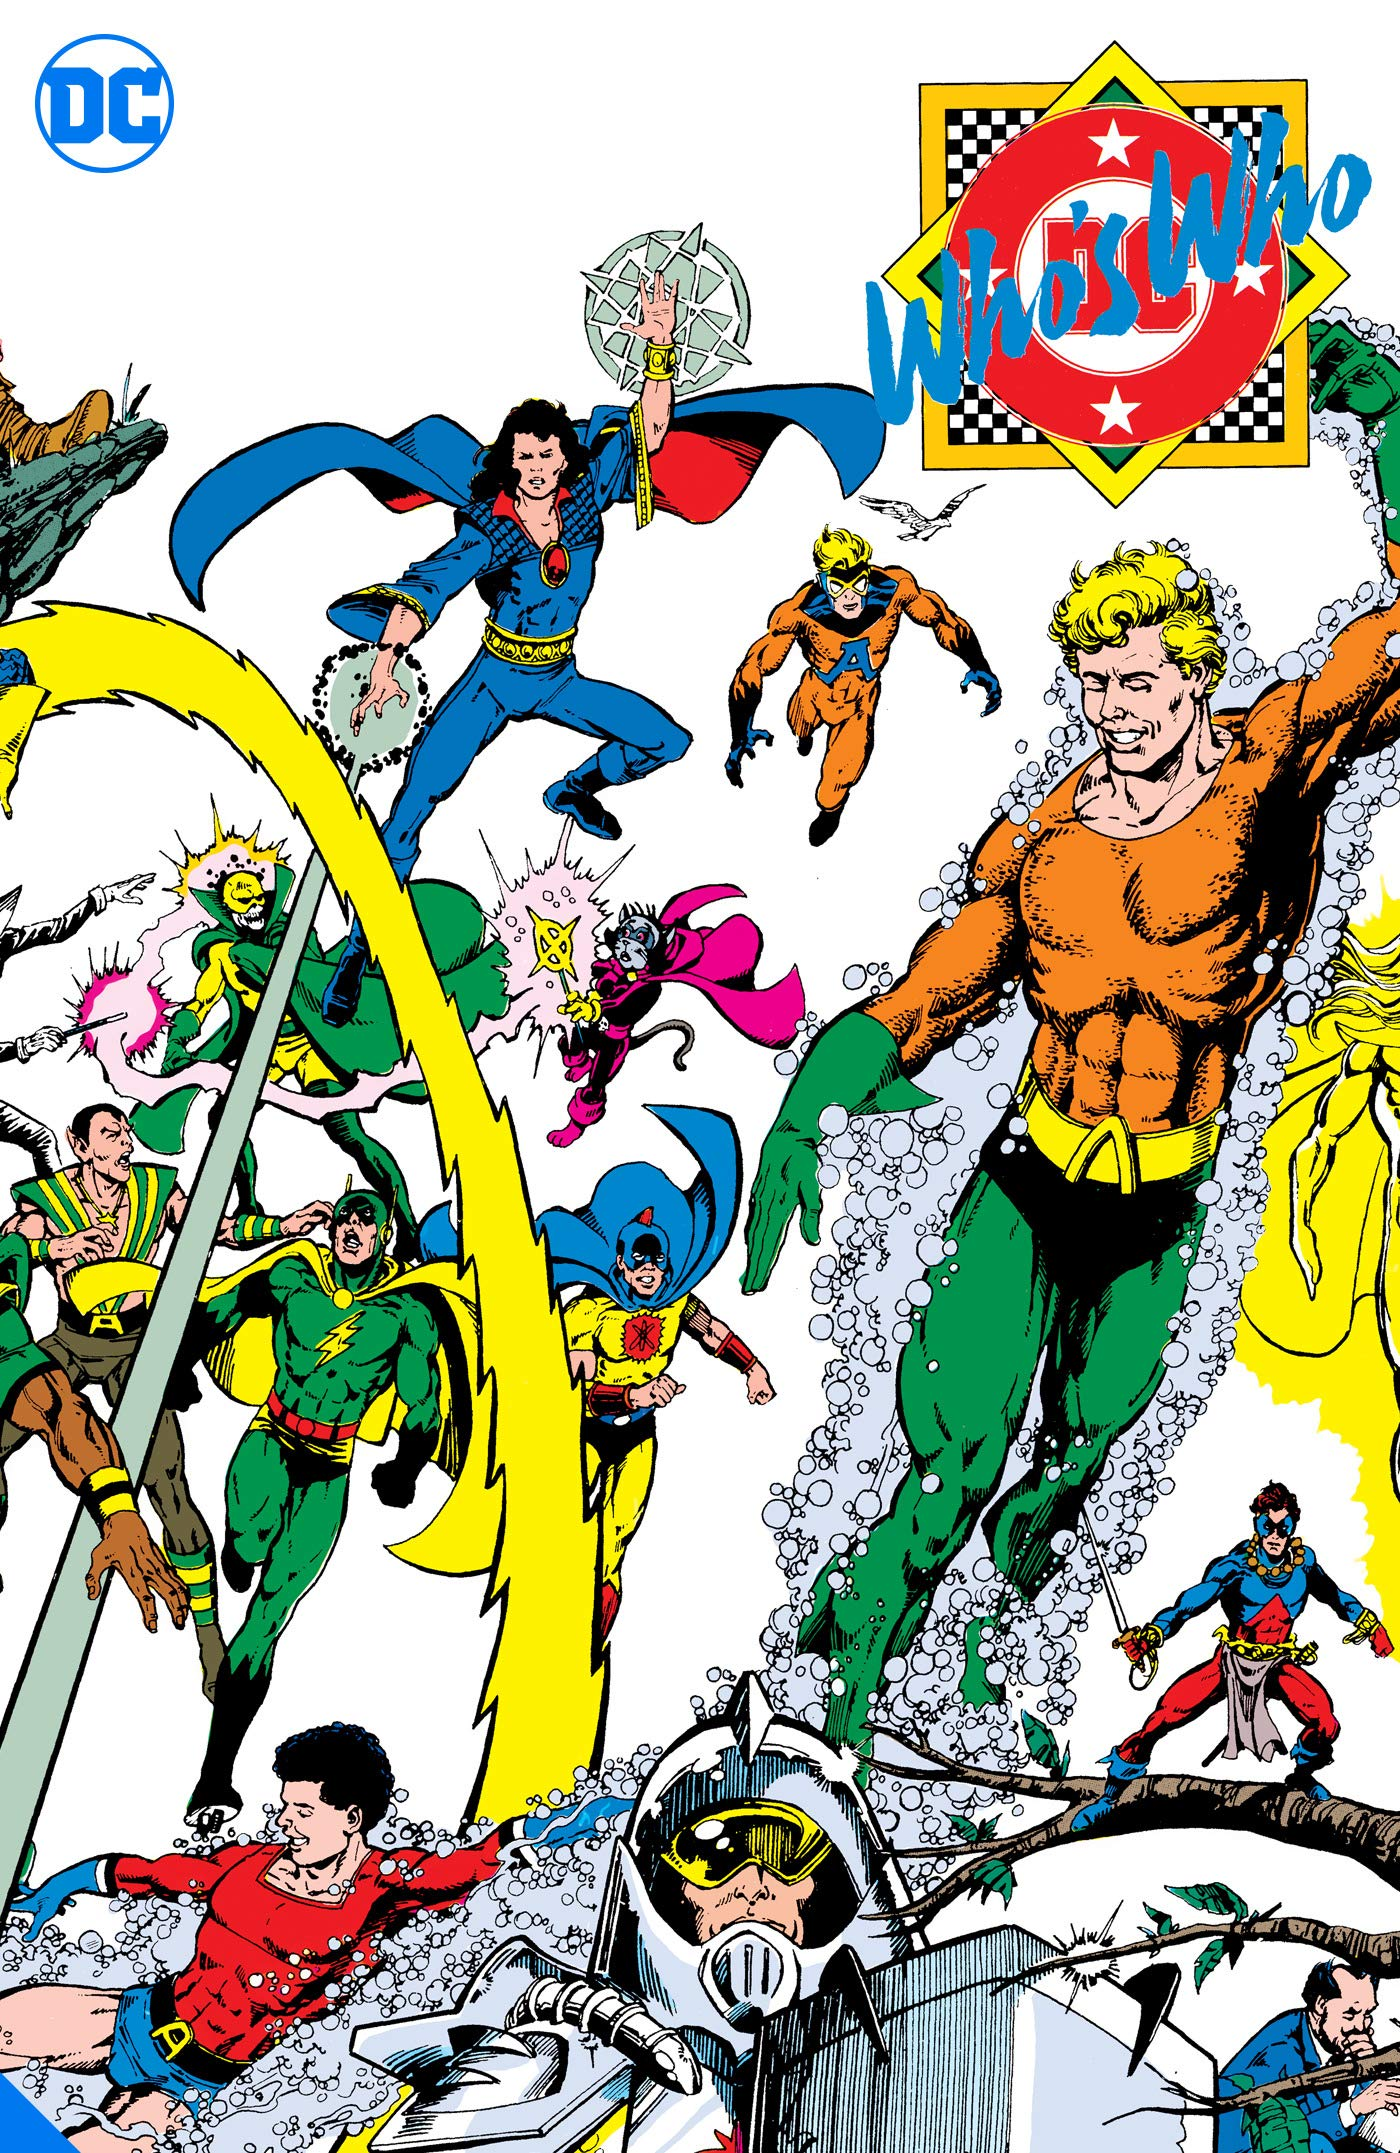 DC Who's Who Omnibus (Vol 1) Release Date?